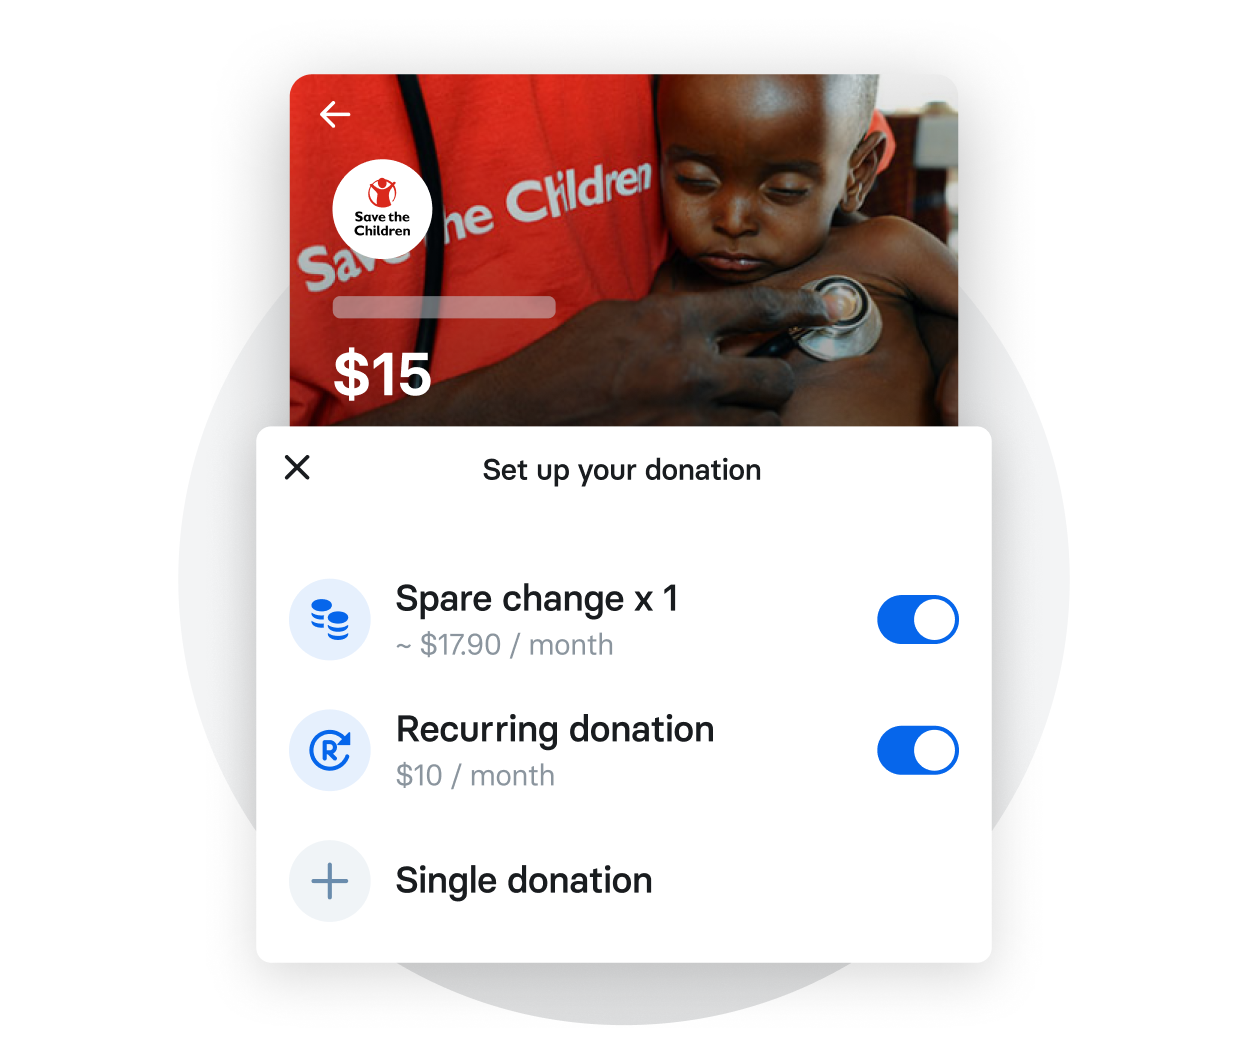 You choose how to make a donation